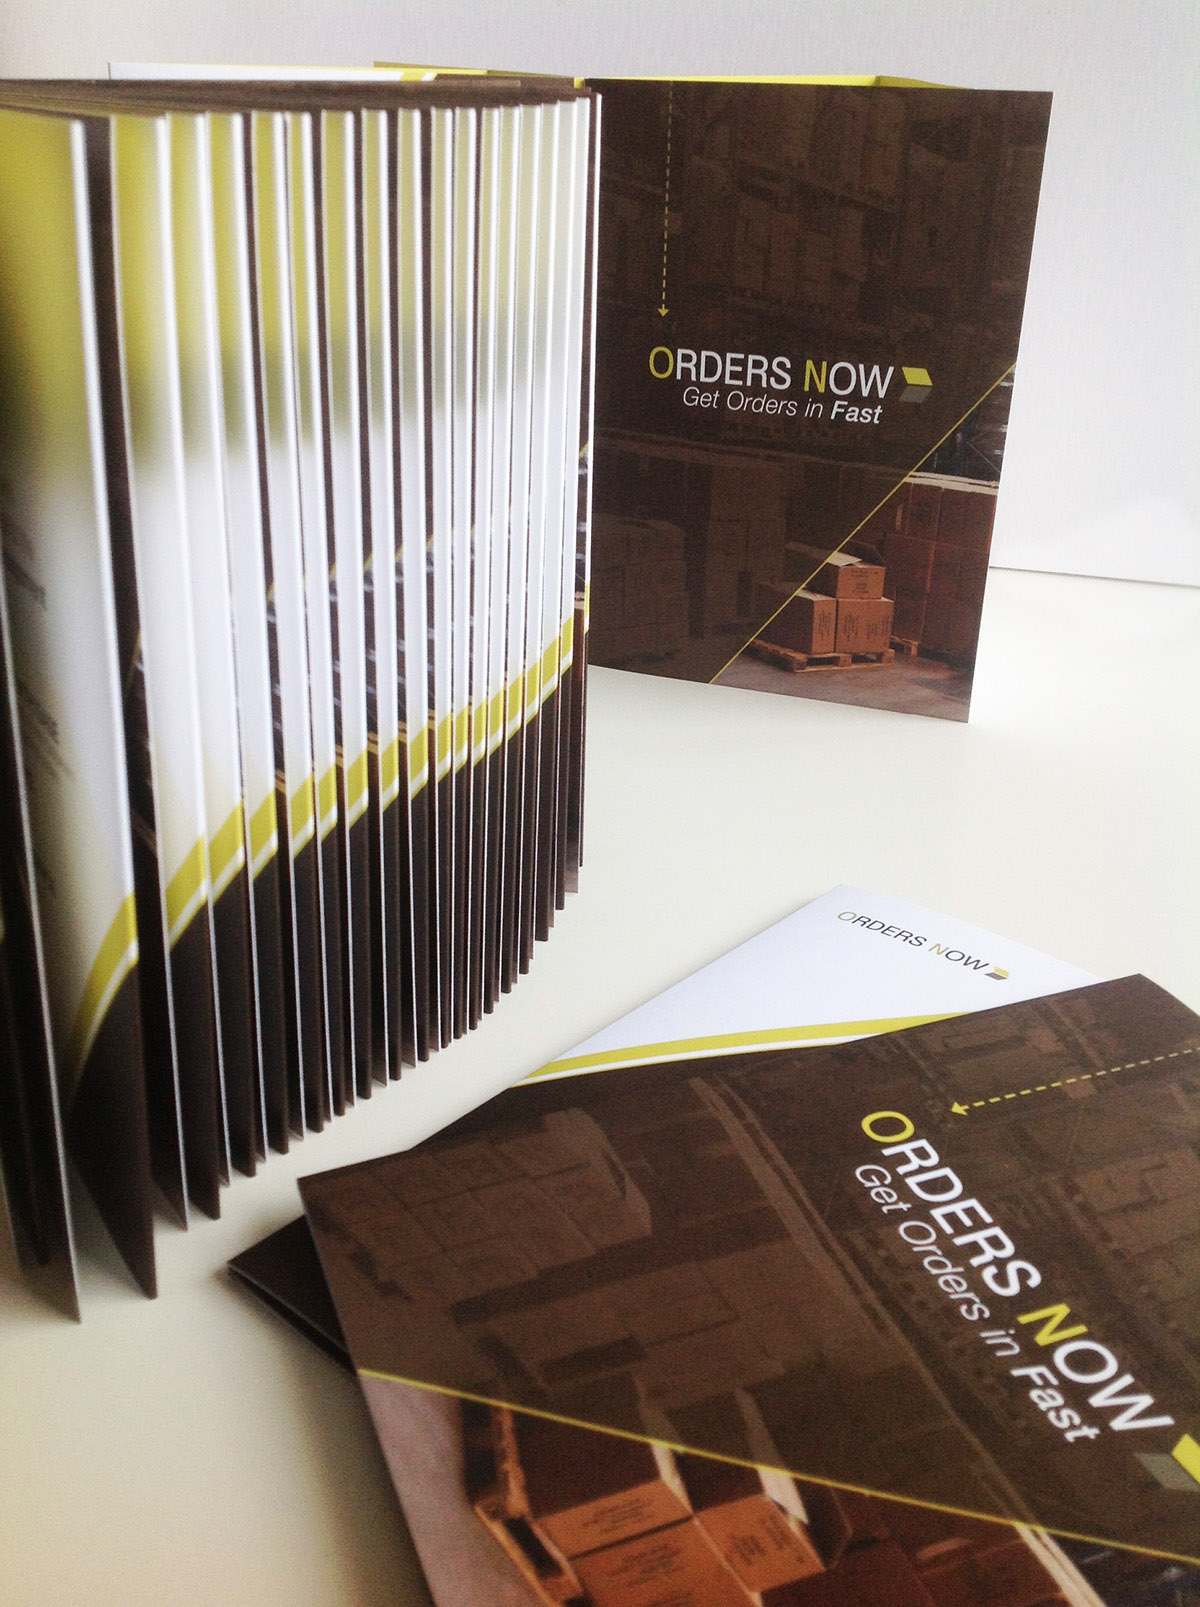 Orders Now Brochure